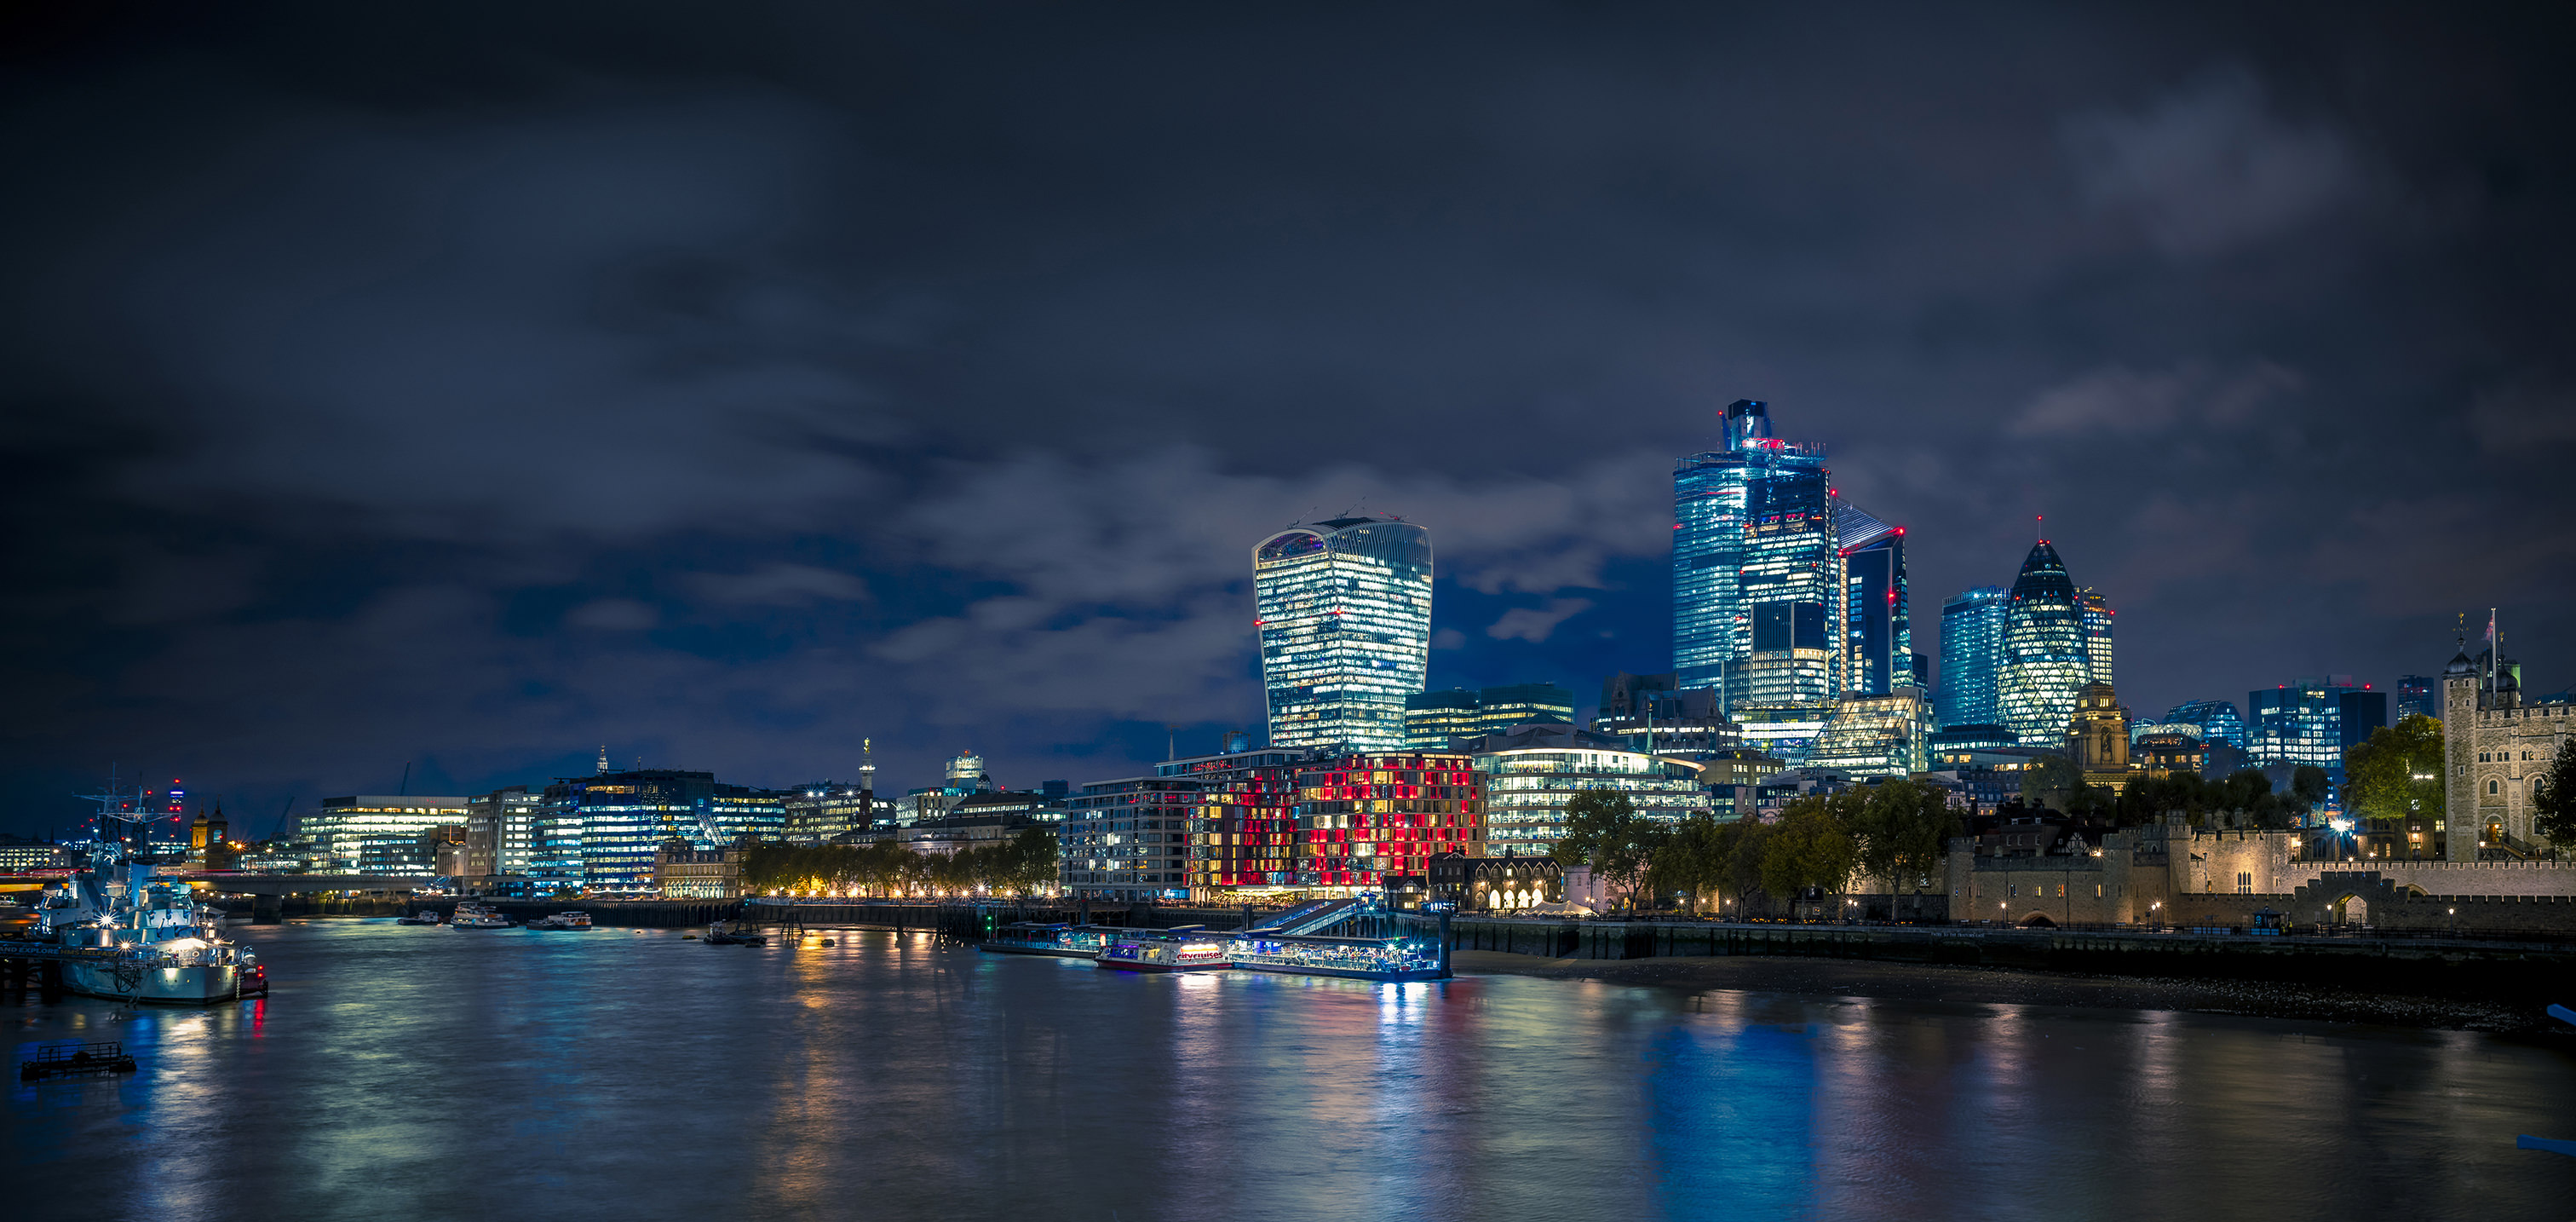 London city at night from the Tower Bridge